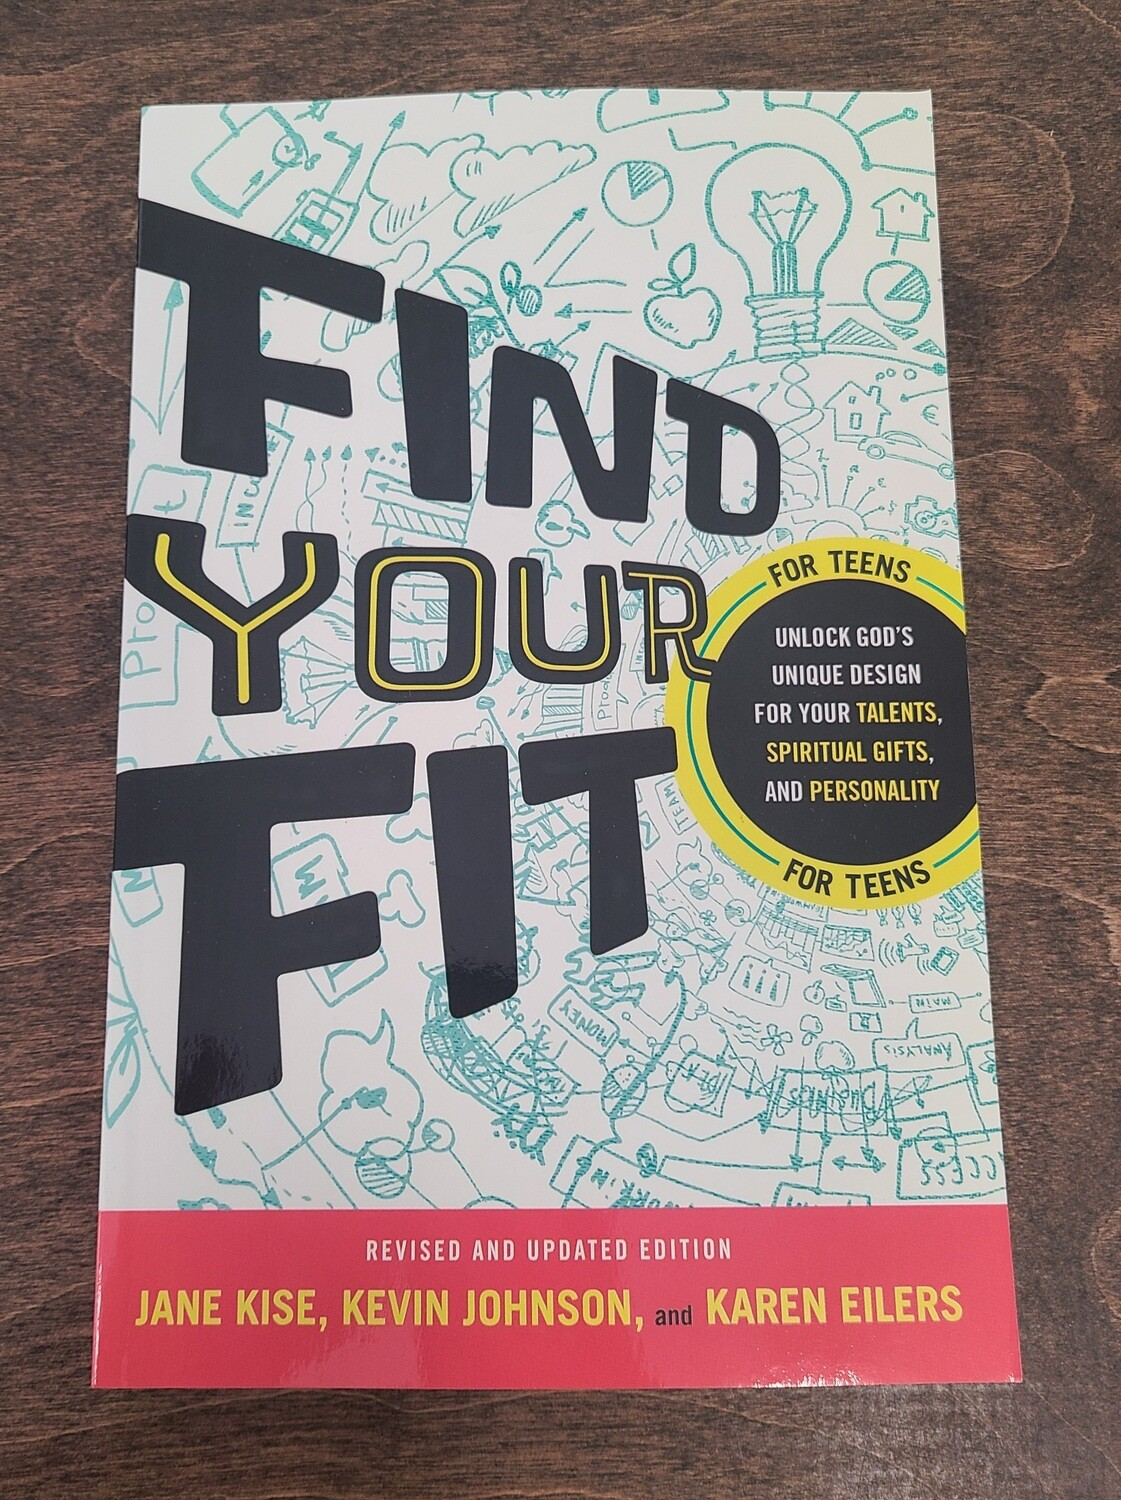 Find Your Fit: Unlock God's Unique Design for Your Talents, Spiritual Gifts, and Personality by Jane Kise, Kevin Johnson, and Karen Eilers